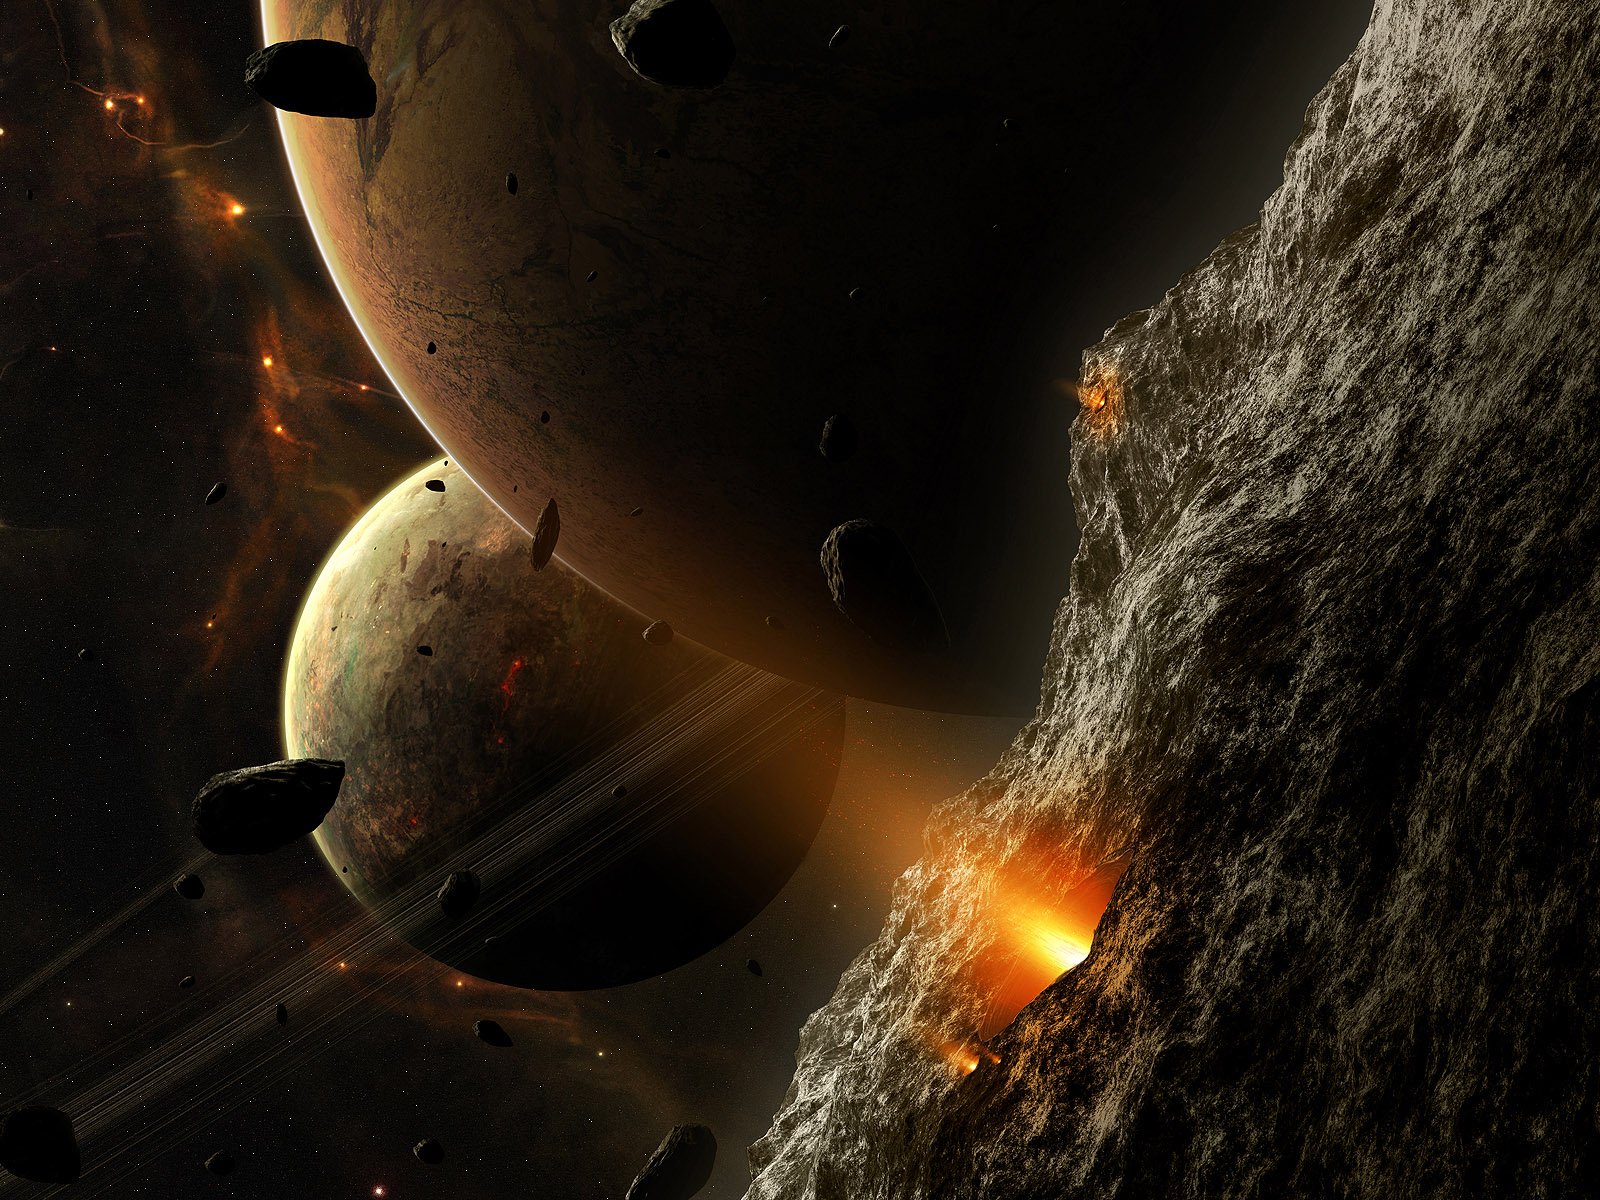 Wallpapers del universo en 3D